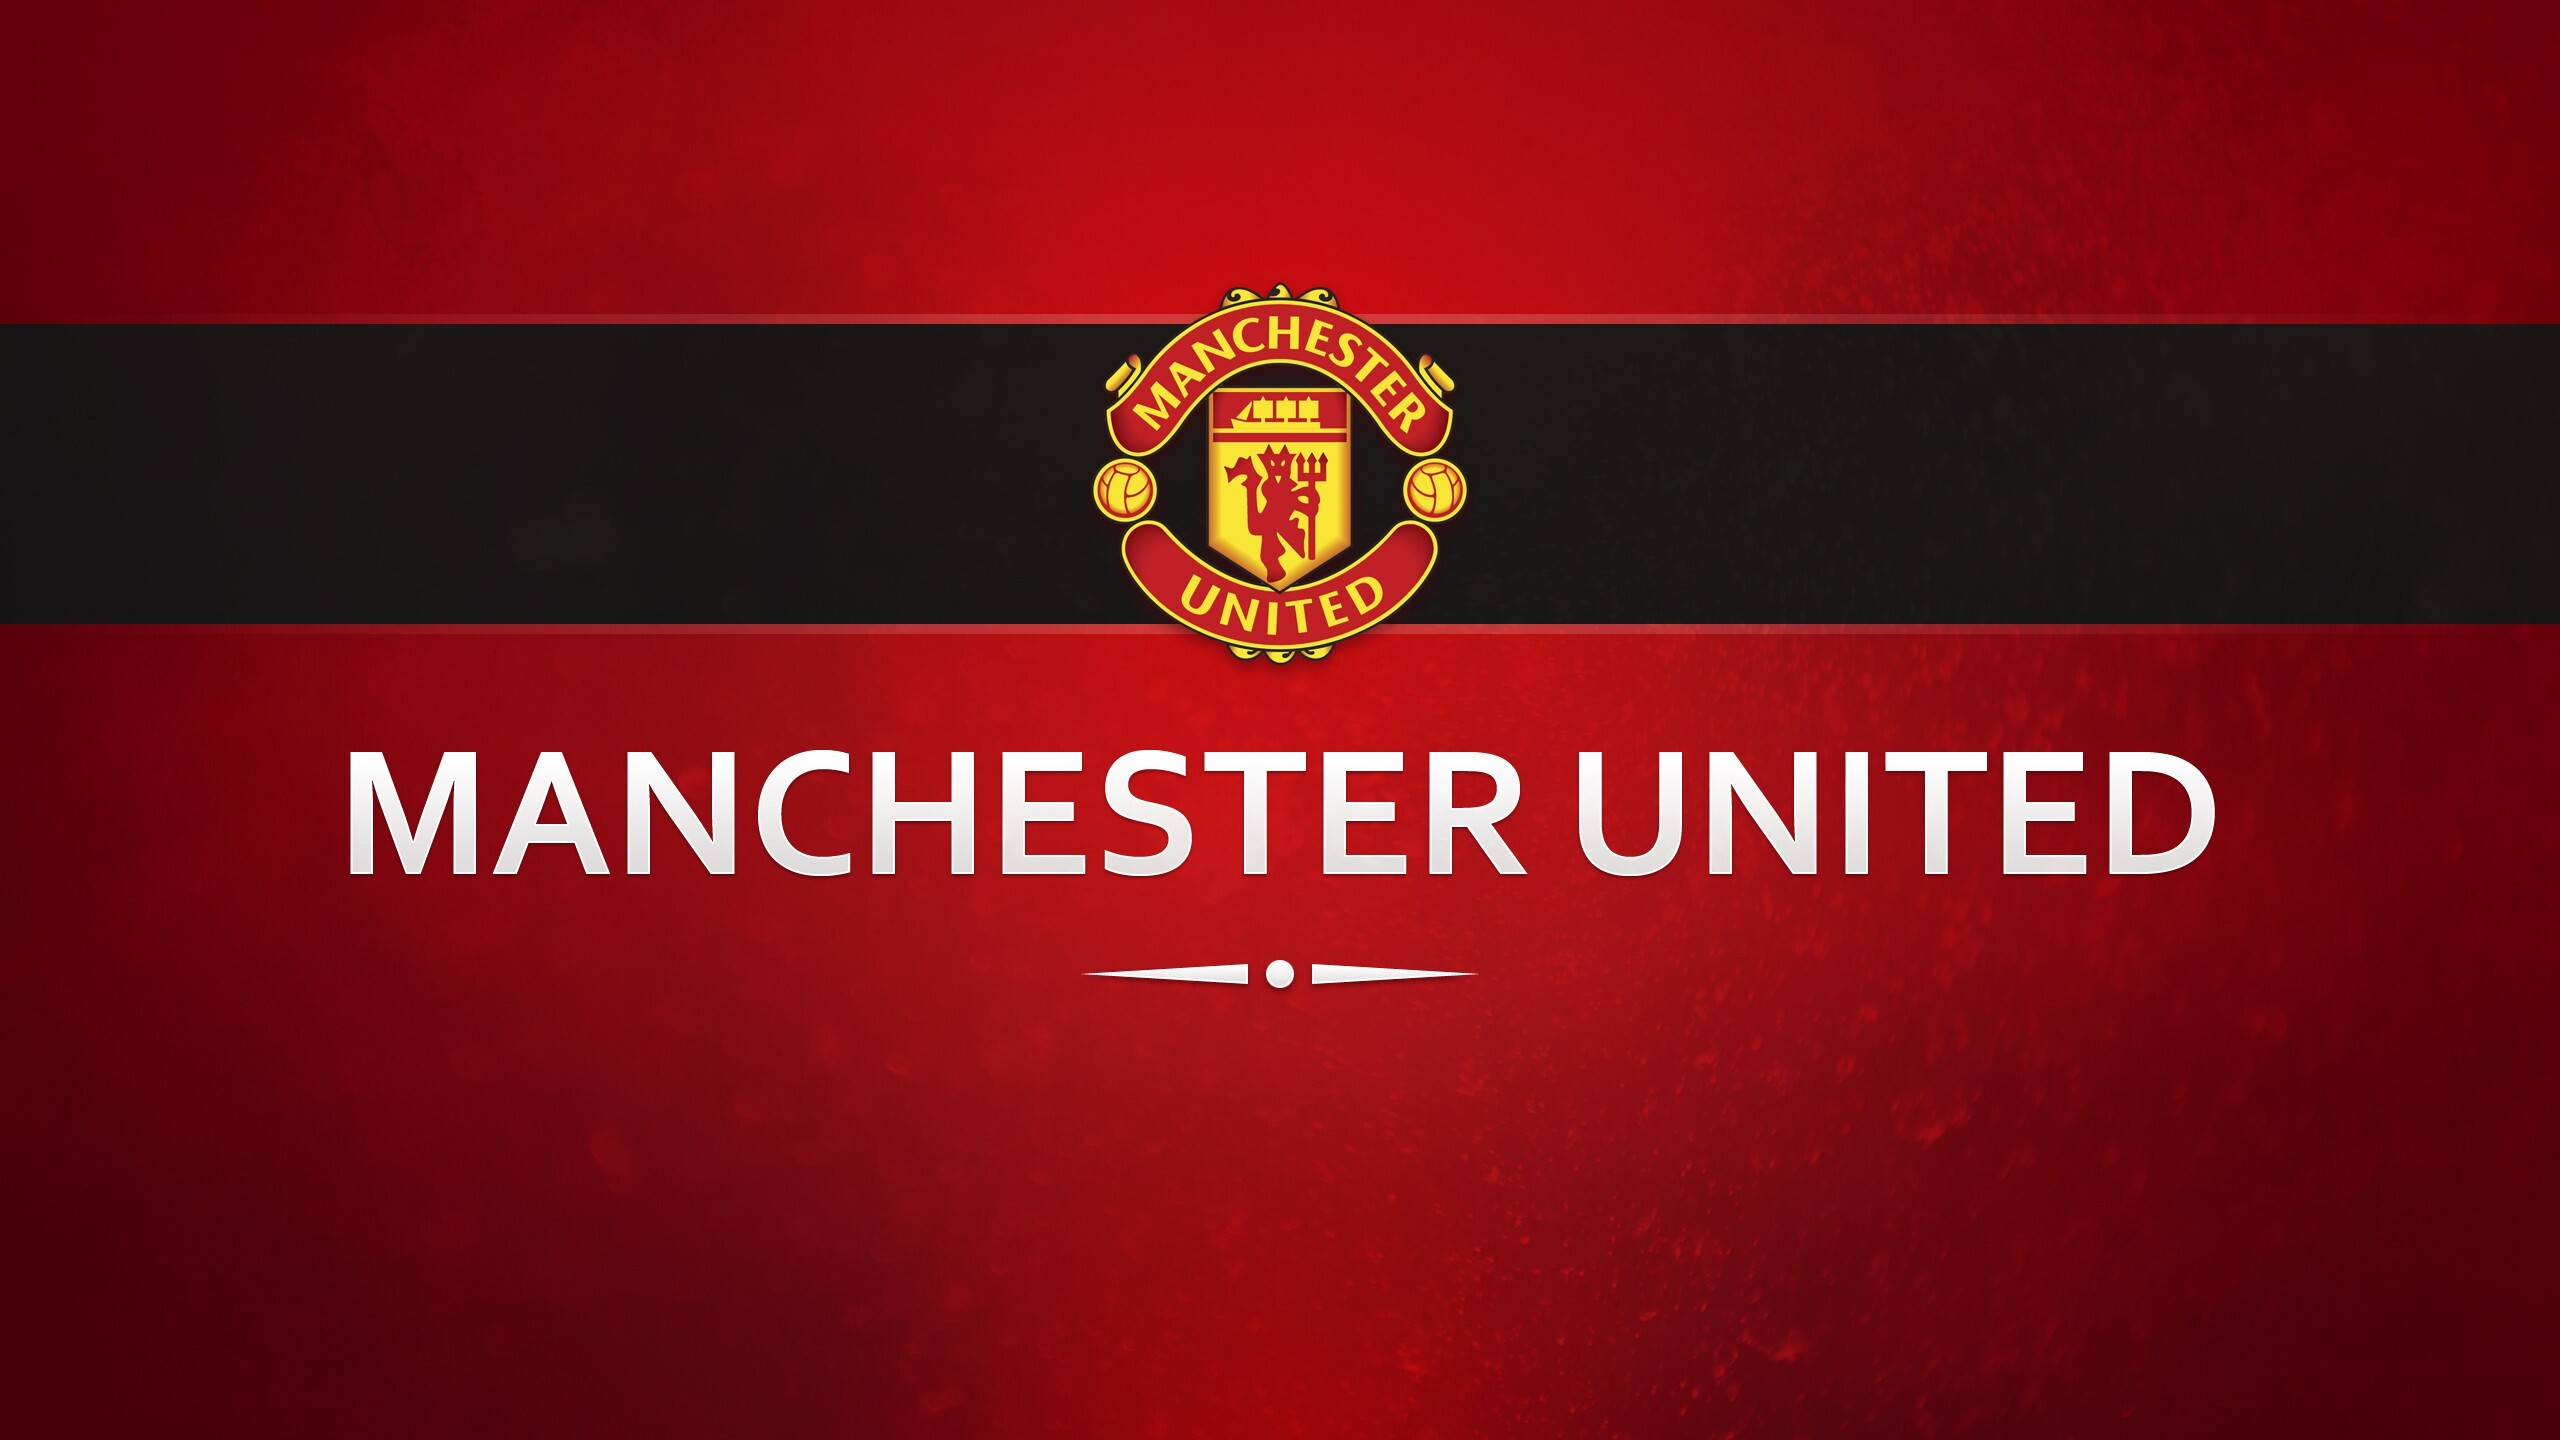 2560x1440 Manchester United 1440p Resolution Hd 4k